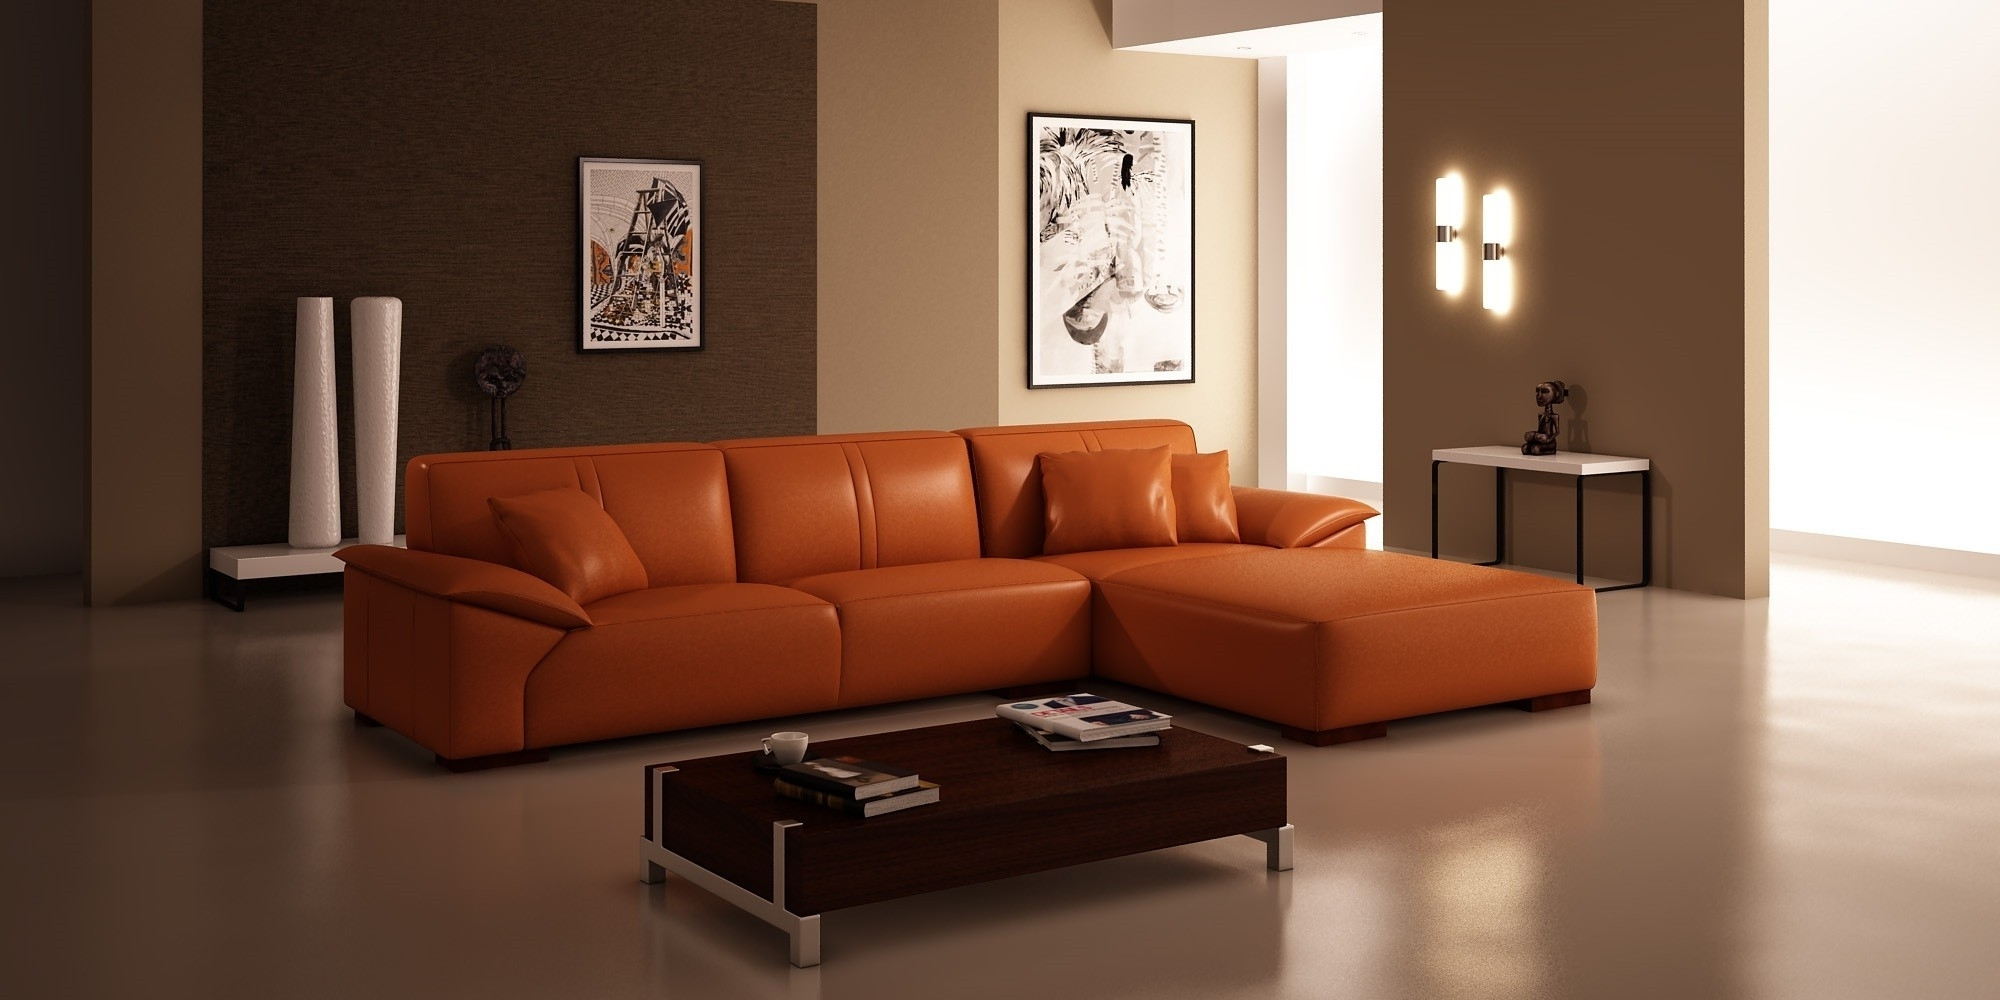 Furniture: Comfy Design Of Oversized Couch For Charming Living Pertaining To Most Current Overstuffed Sofas And Chairs (View 8 of 20)